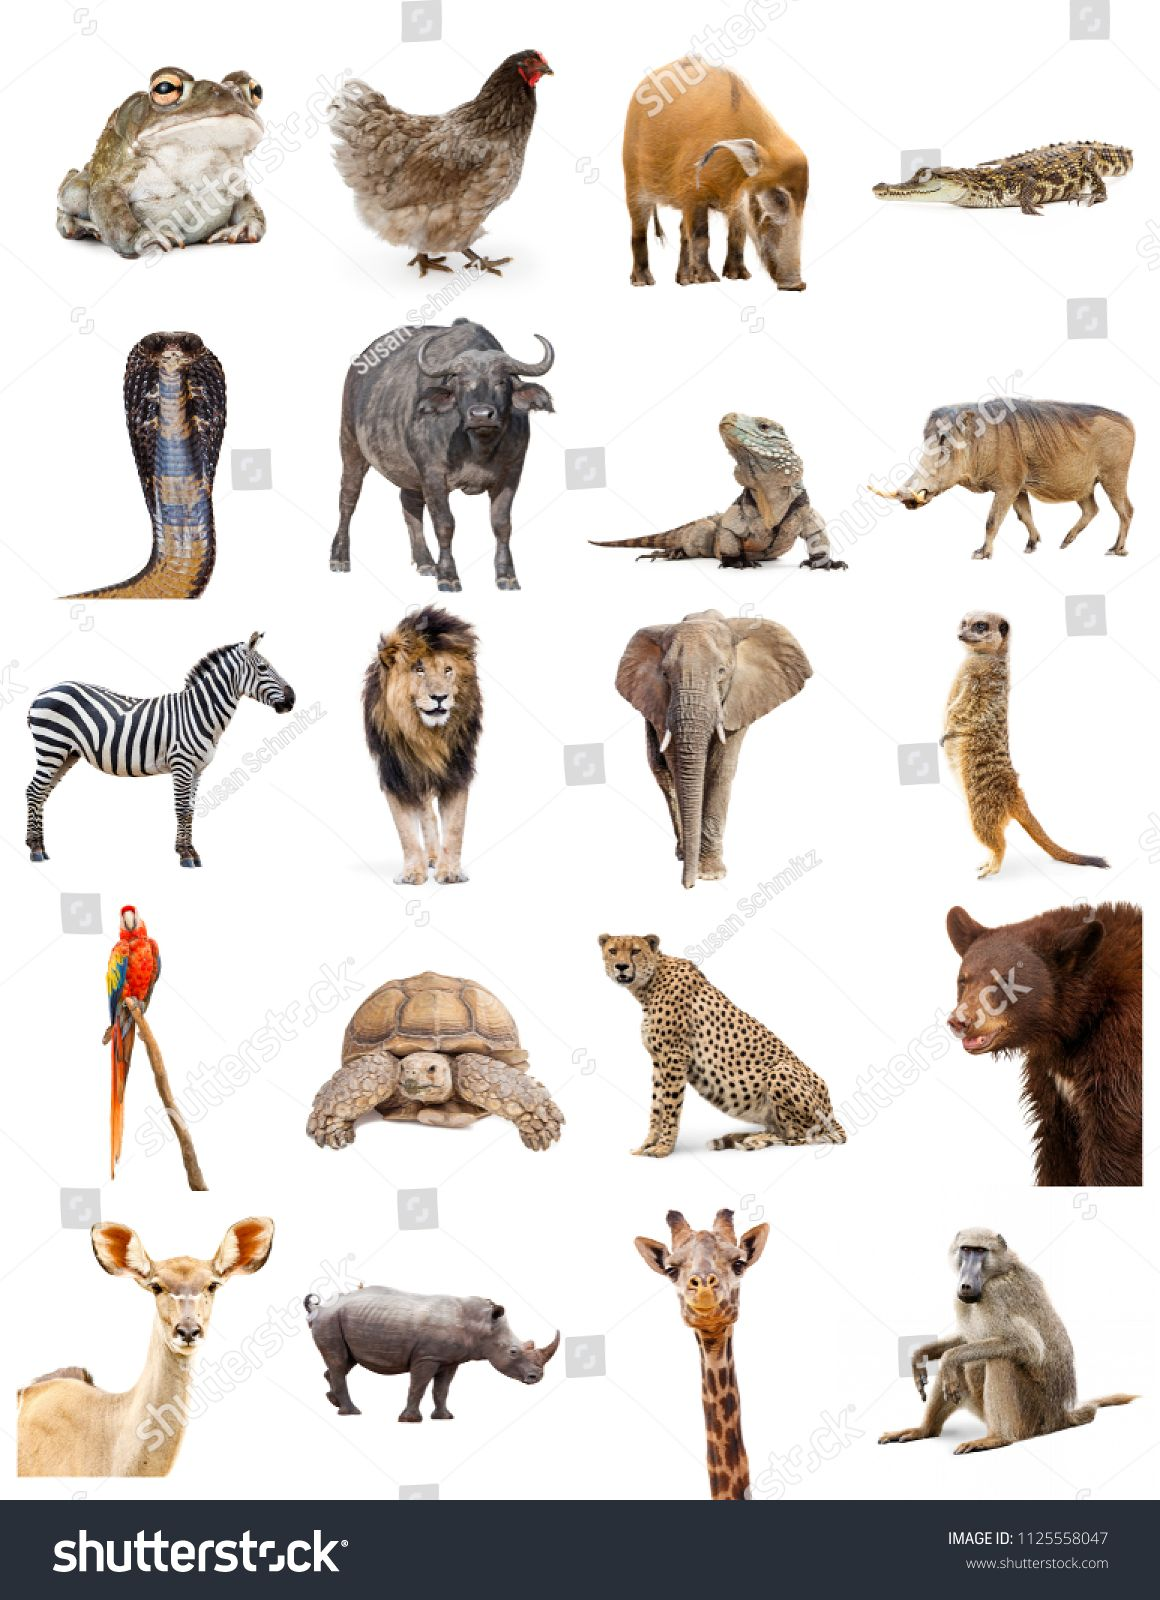 Set Of Twenty Different Zoo Animals On White Sized To Print On Letter Paper Or For Use On Websites Or Social Media Image Zoo Animals Animals Wildlife Animals